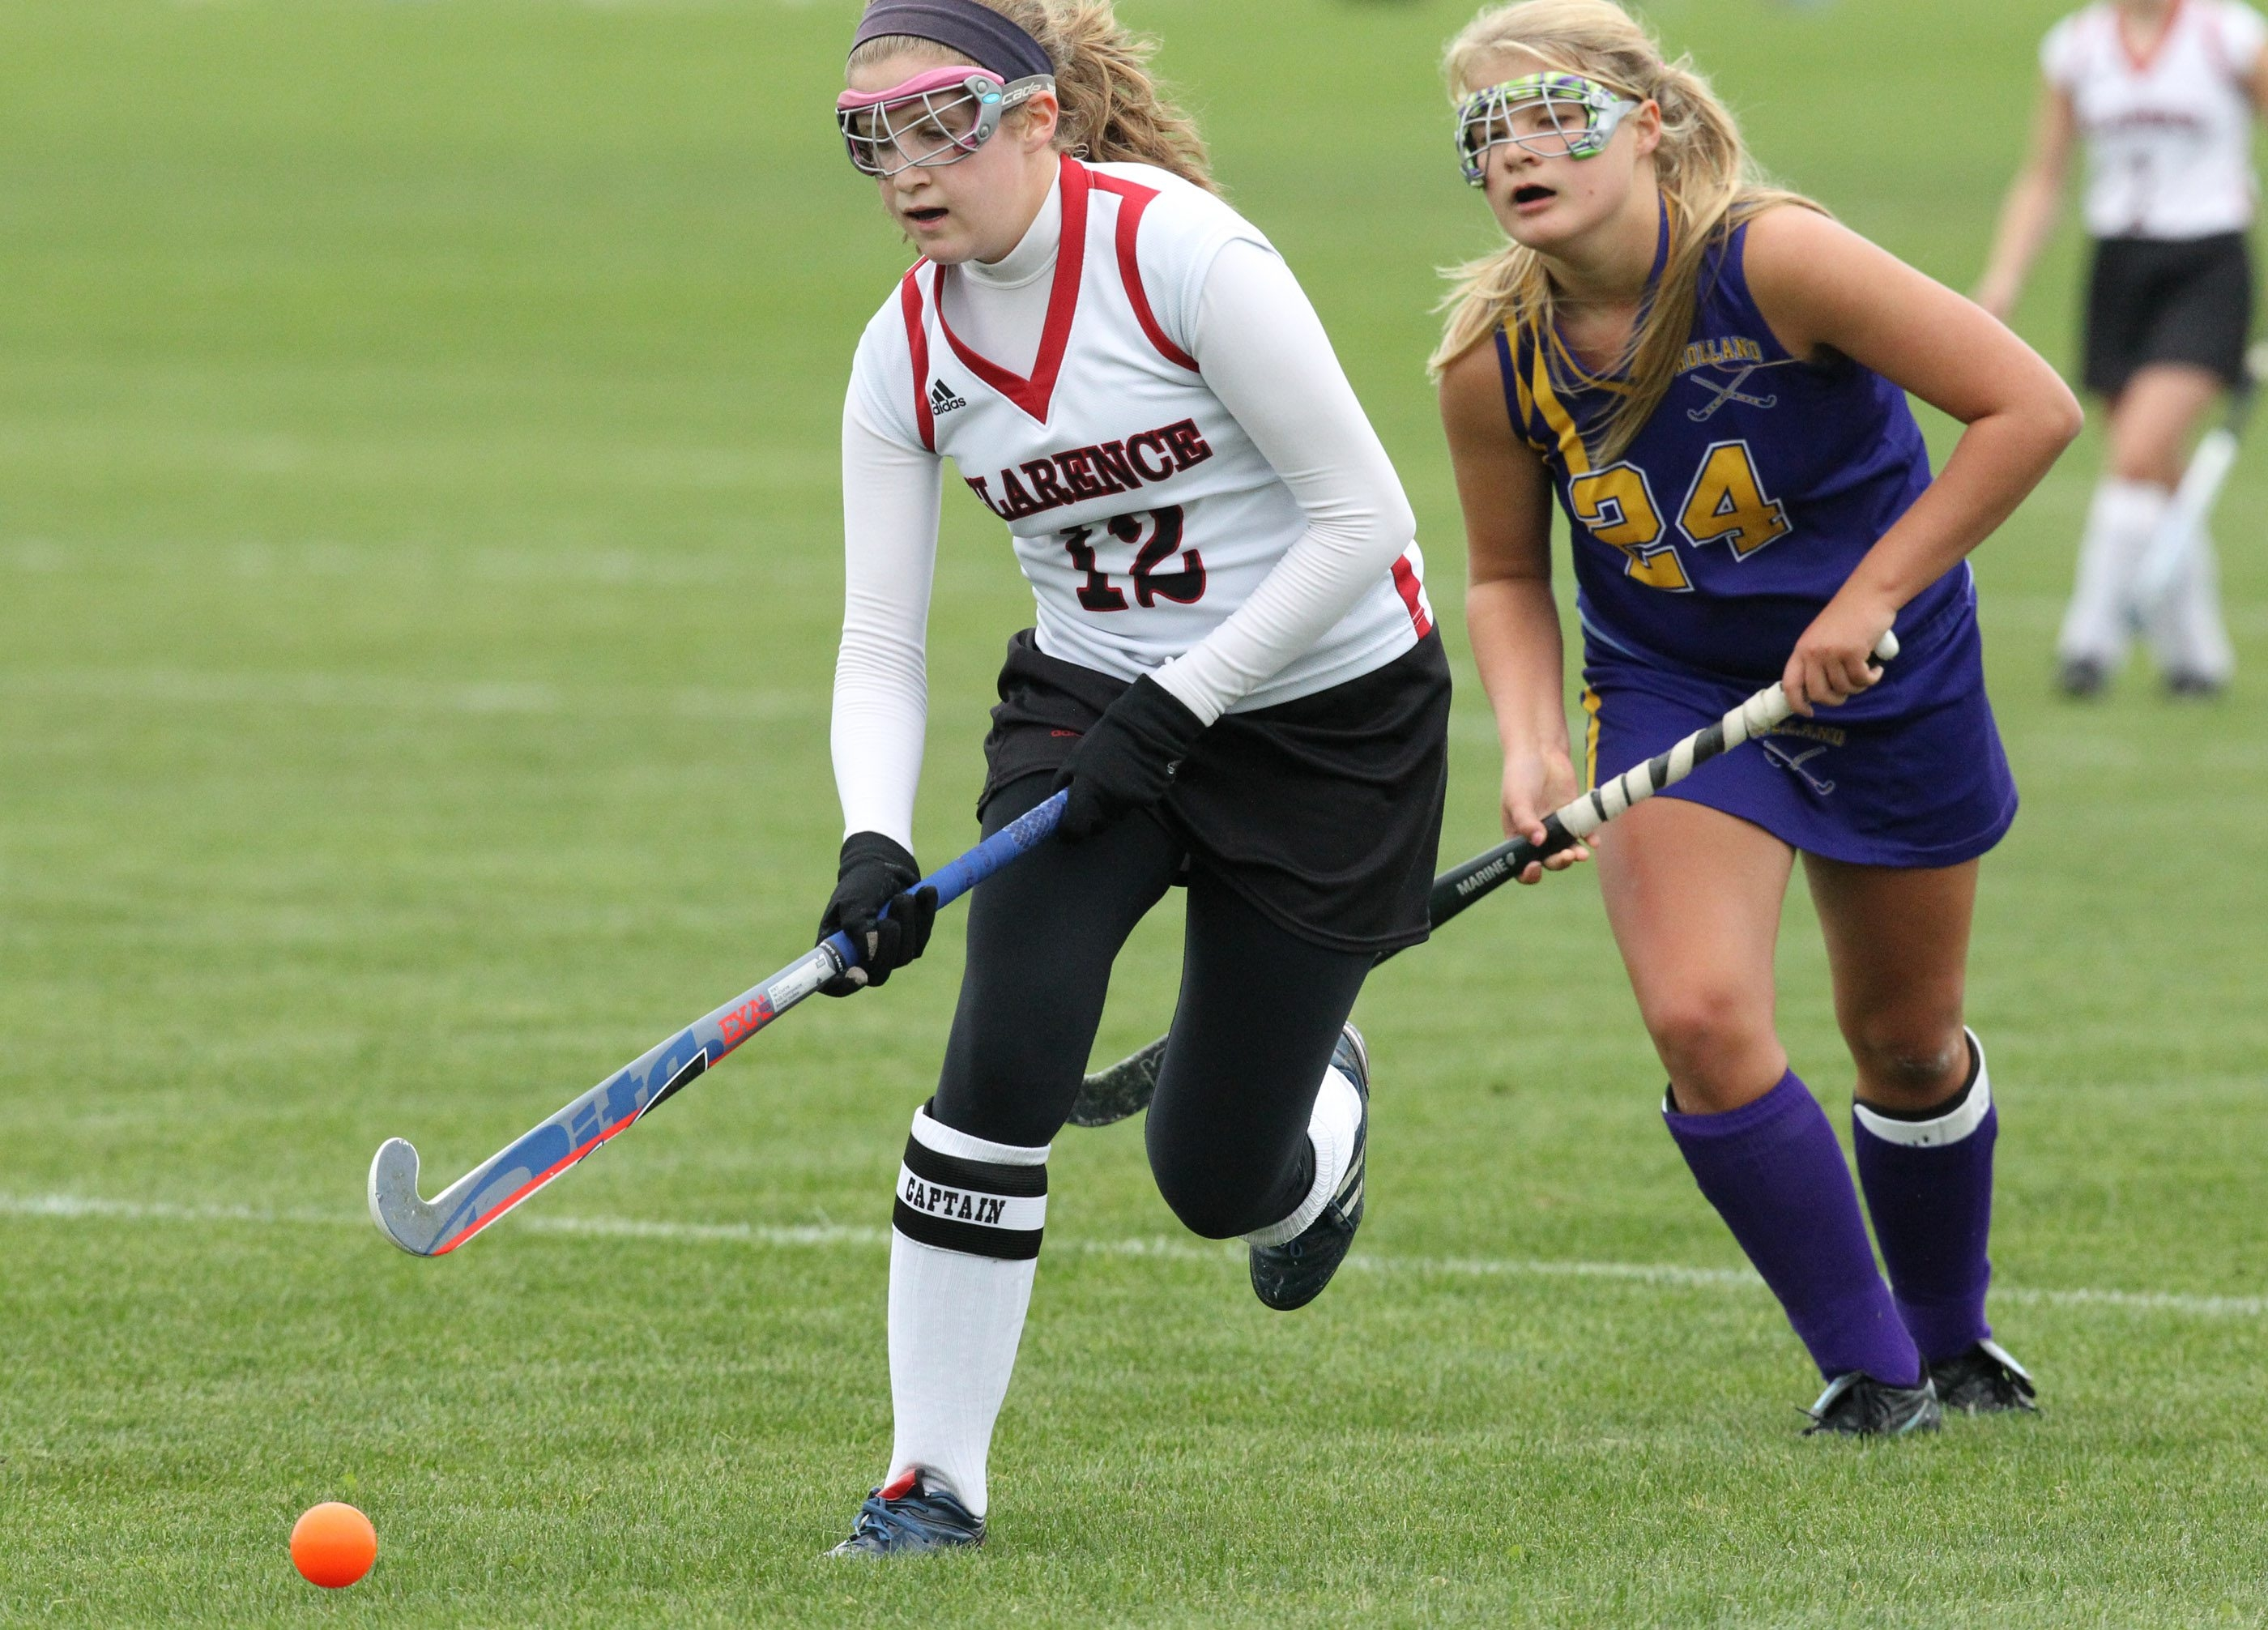 Tess Luzi was one of three scorers for Clarence in a 3-0 win over Holland in field hockey.